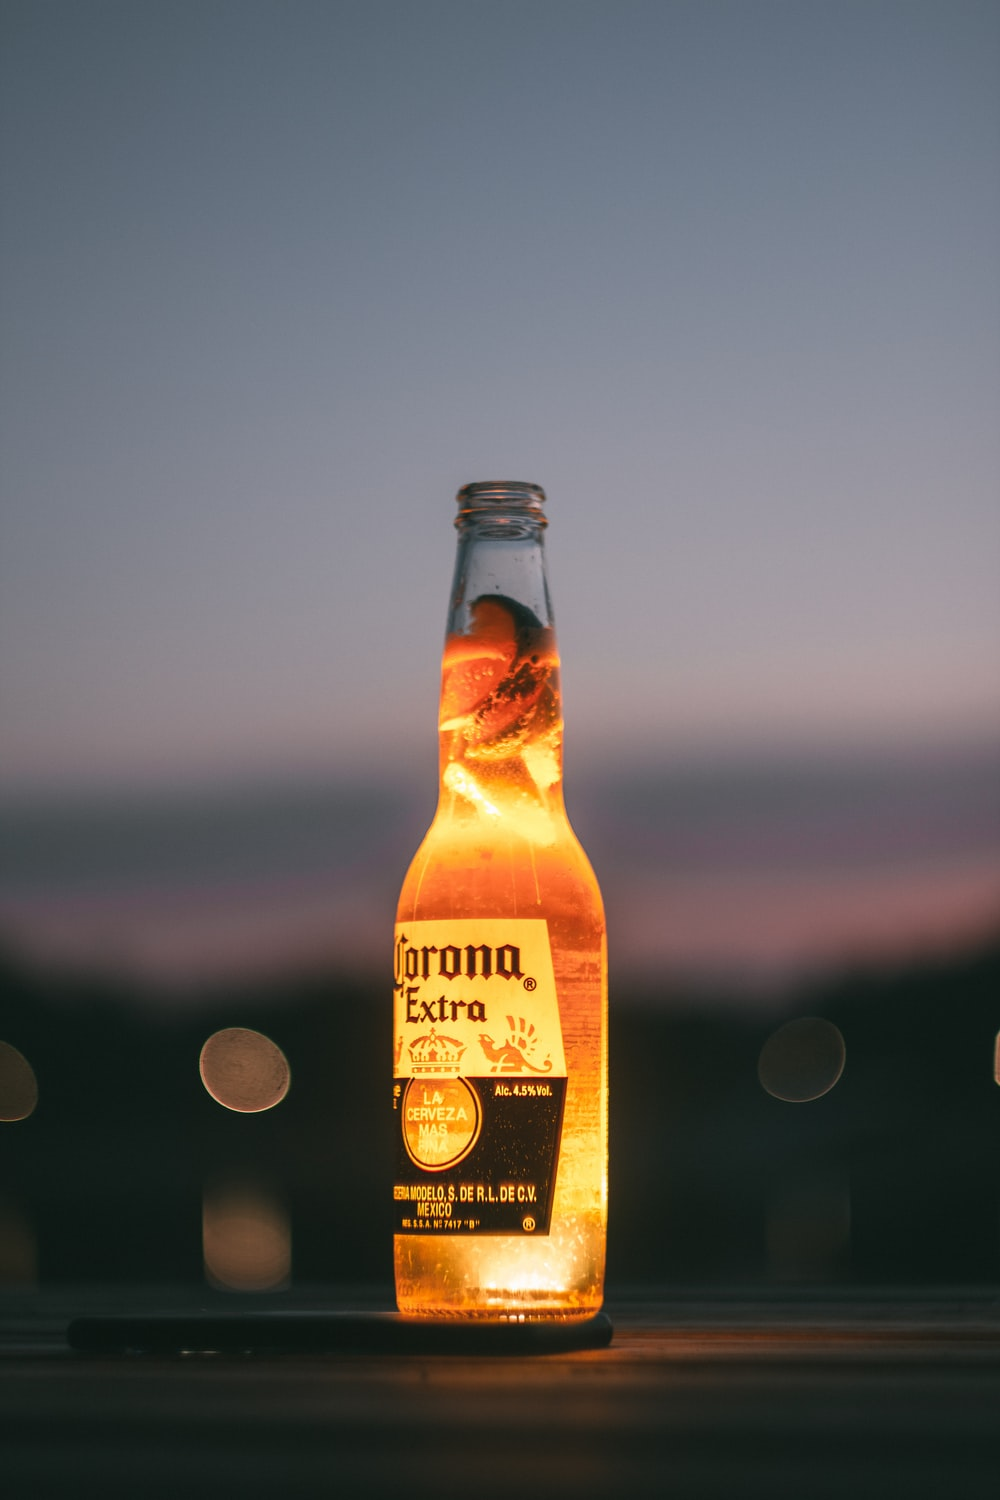 selective focus photography of corona extra bottle